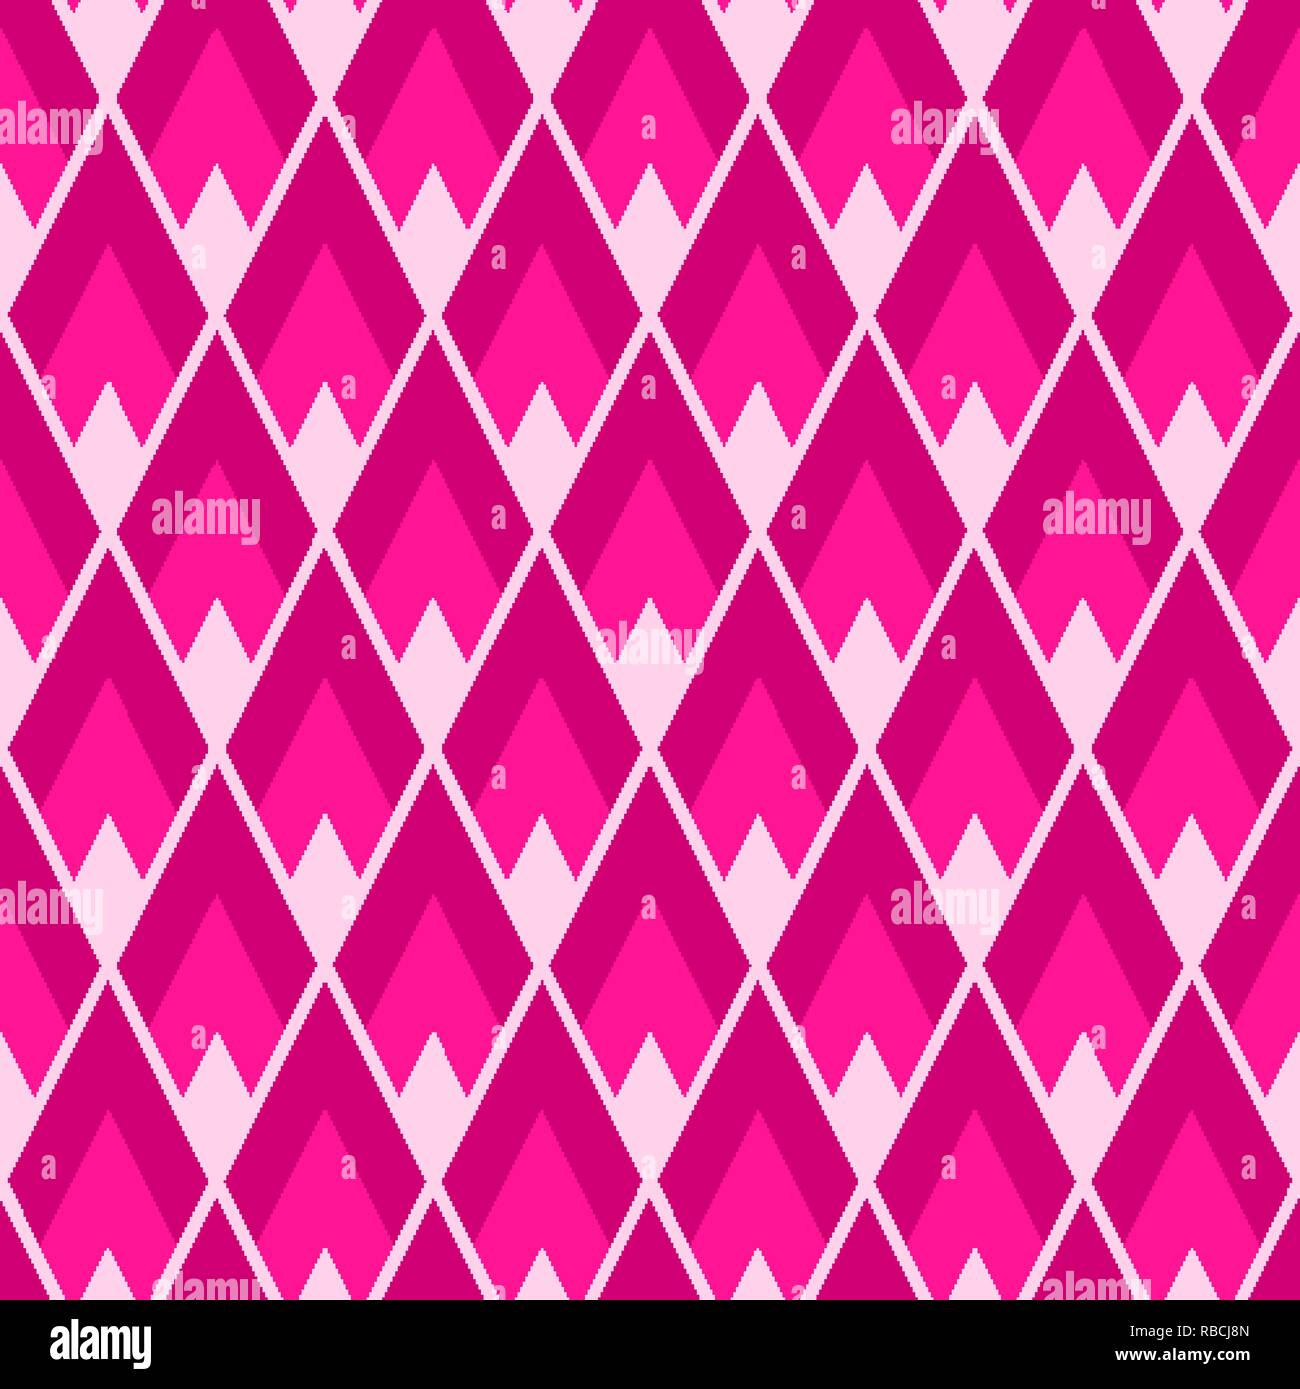 Rhombus seamless pattern. Plastic pink lozenges tile repeat - Stock Vector